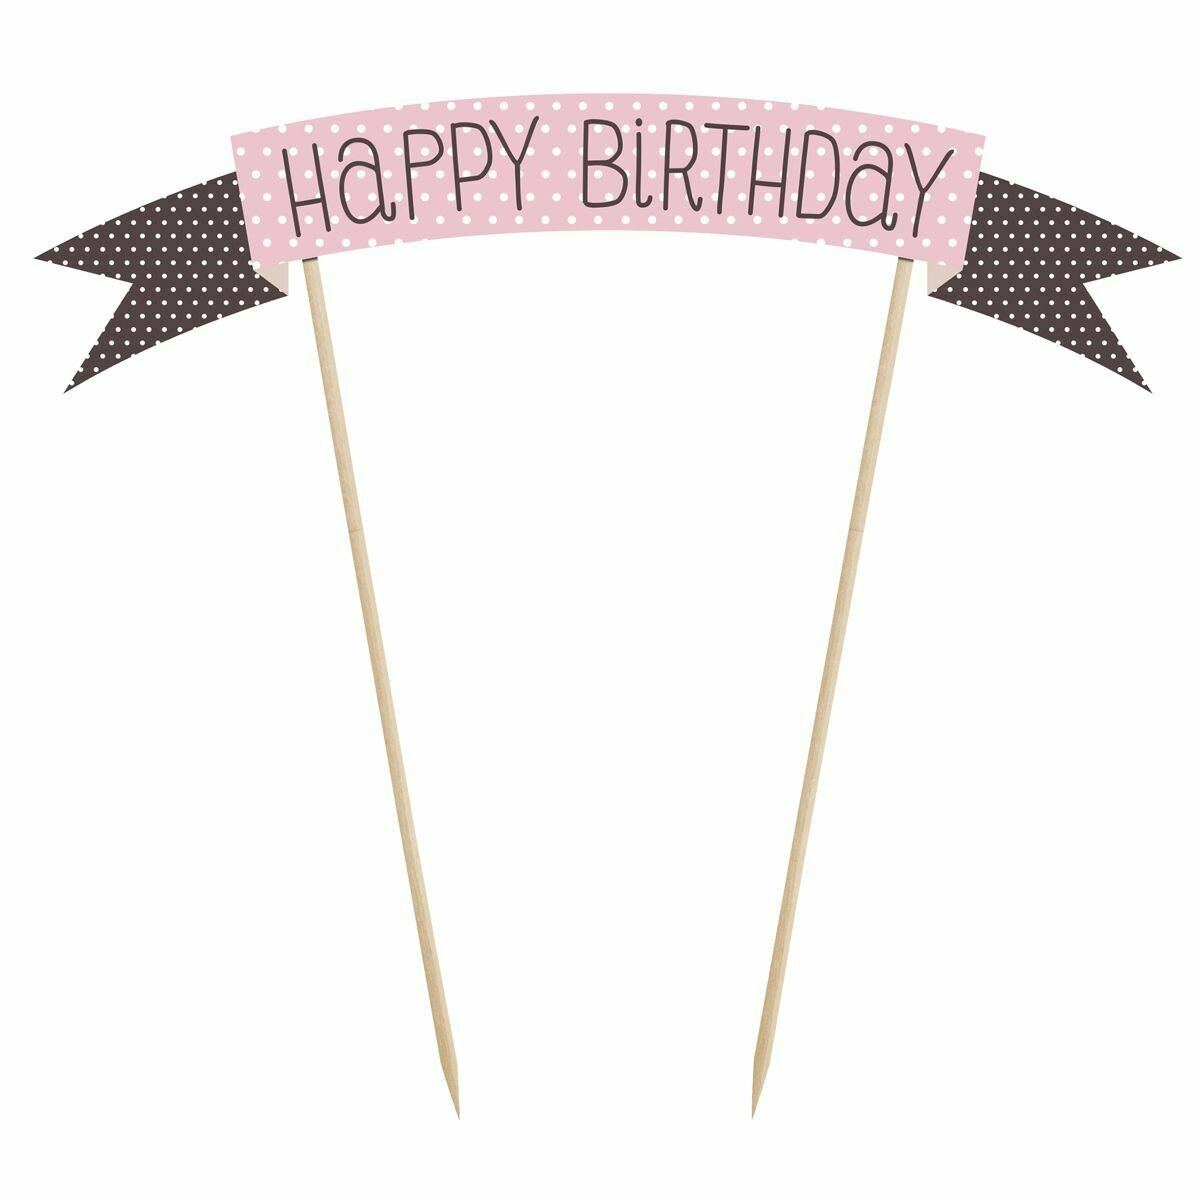 PartyDeco Cake Topper -Sweets -'Happy Birthday' -PINK & BLACK SPOTS Τόπερ Τούρτας